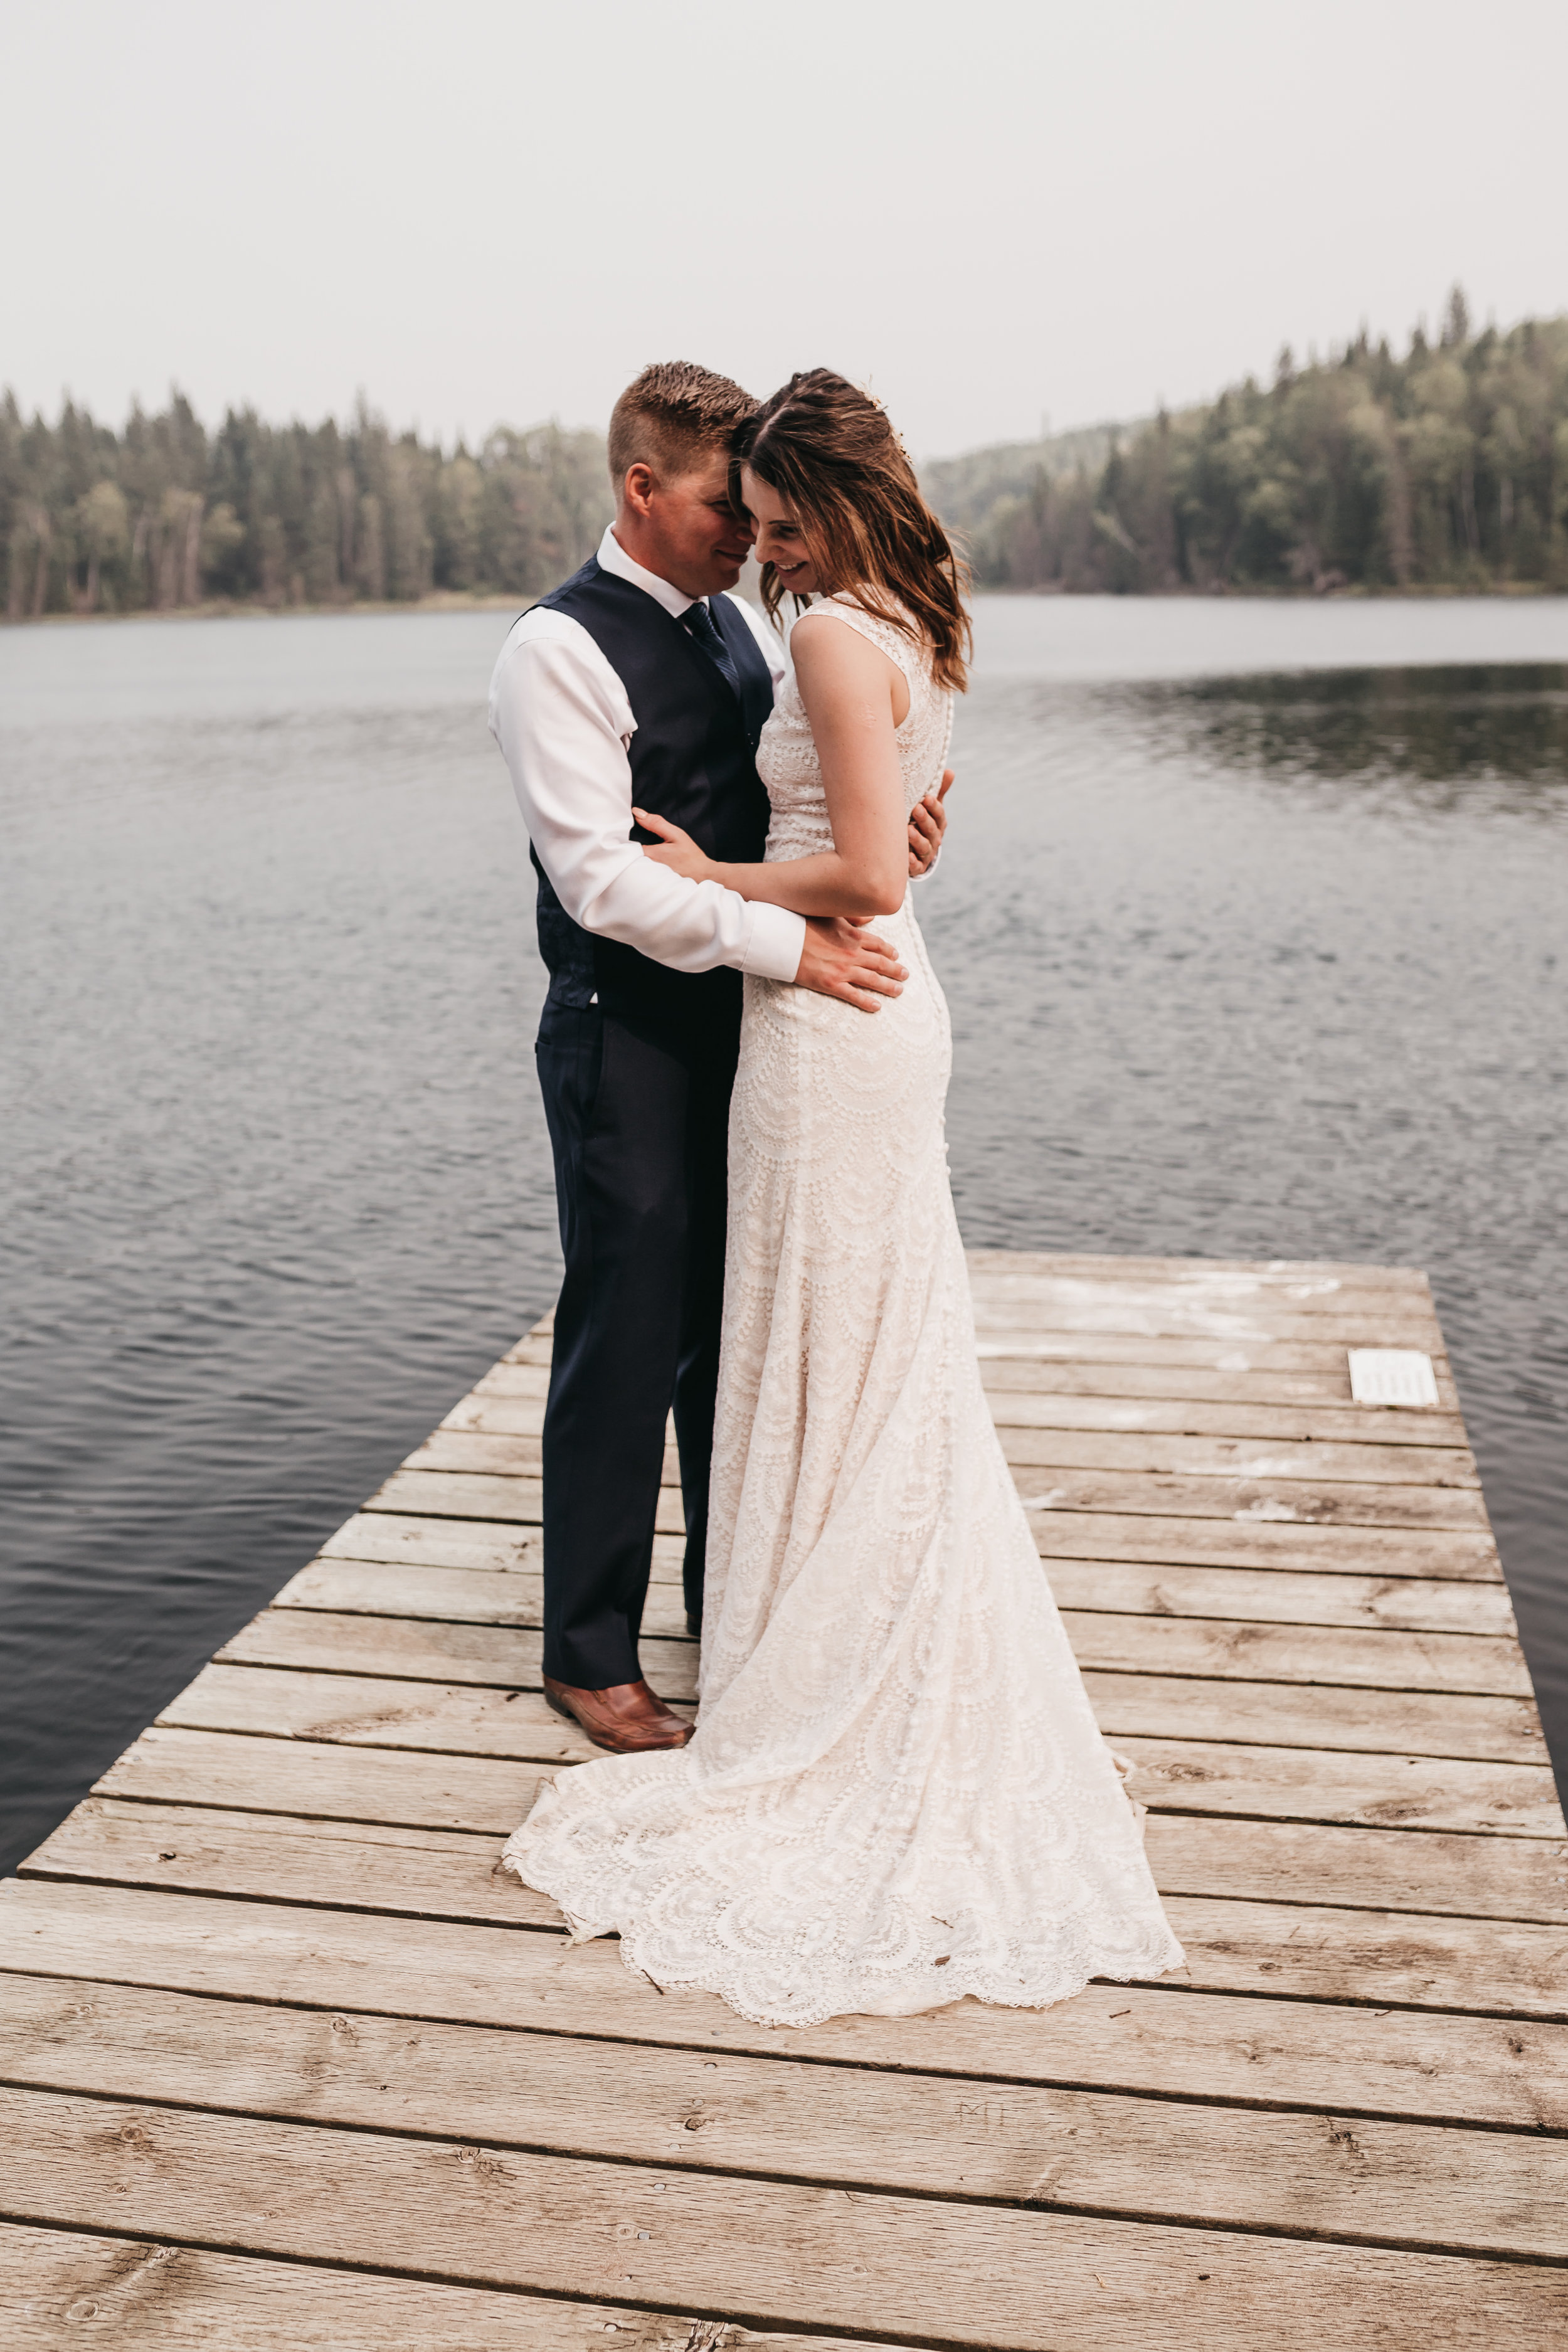 SimplePerfectionsPhotography.Mike+Courtney-717.jpg